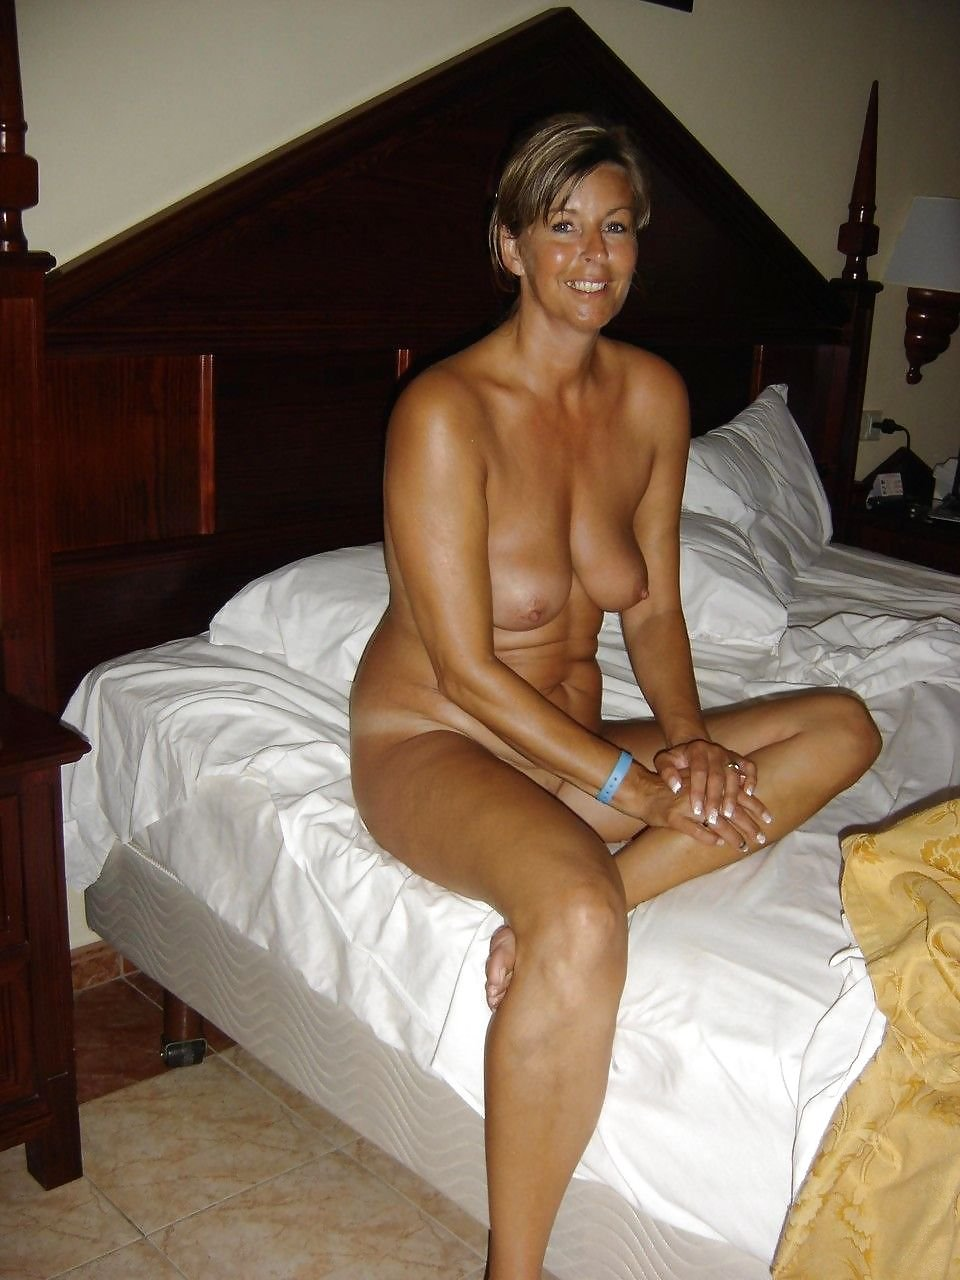 Milf Nude Around House